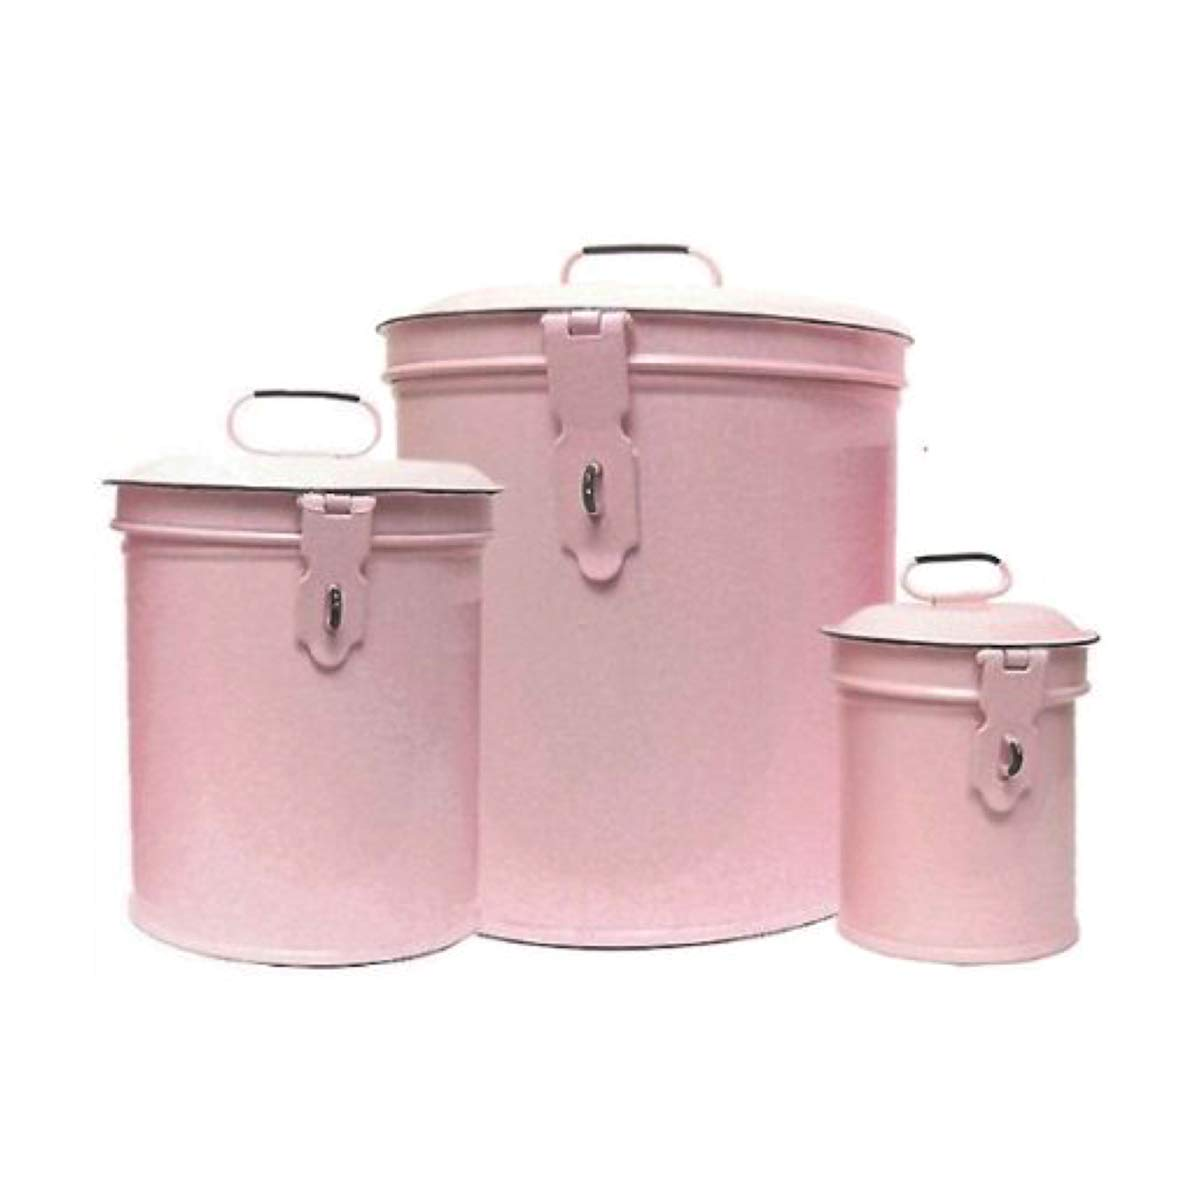 Vintage Style Canister Set ~ Kitchen Storage Canisters E1 Decorative Containers ~ Shabby Chic Pink Enamel Romantic Decor & More